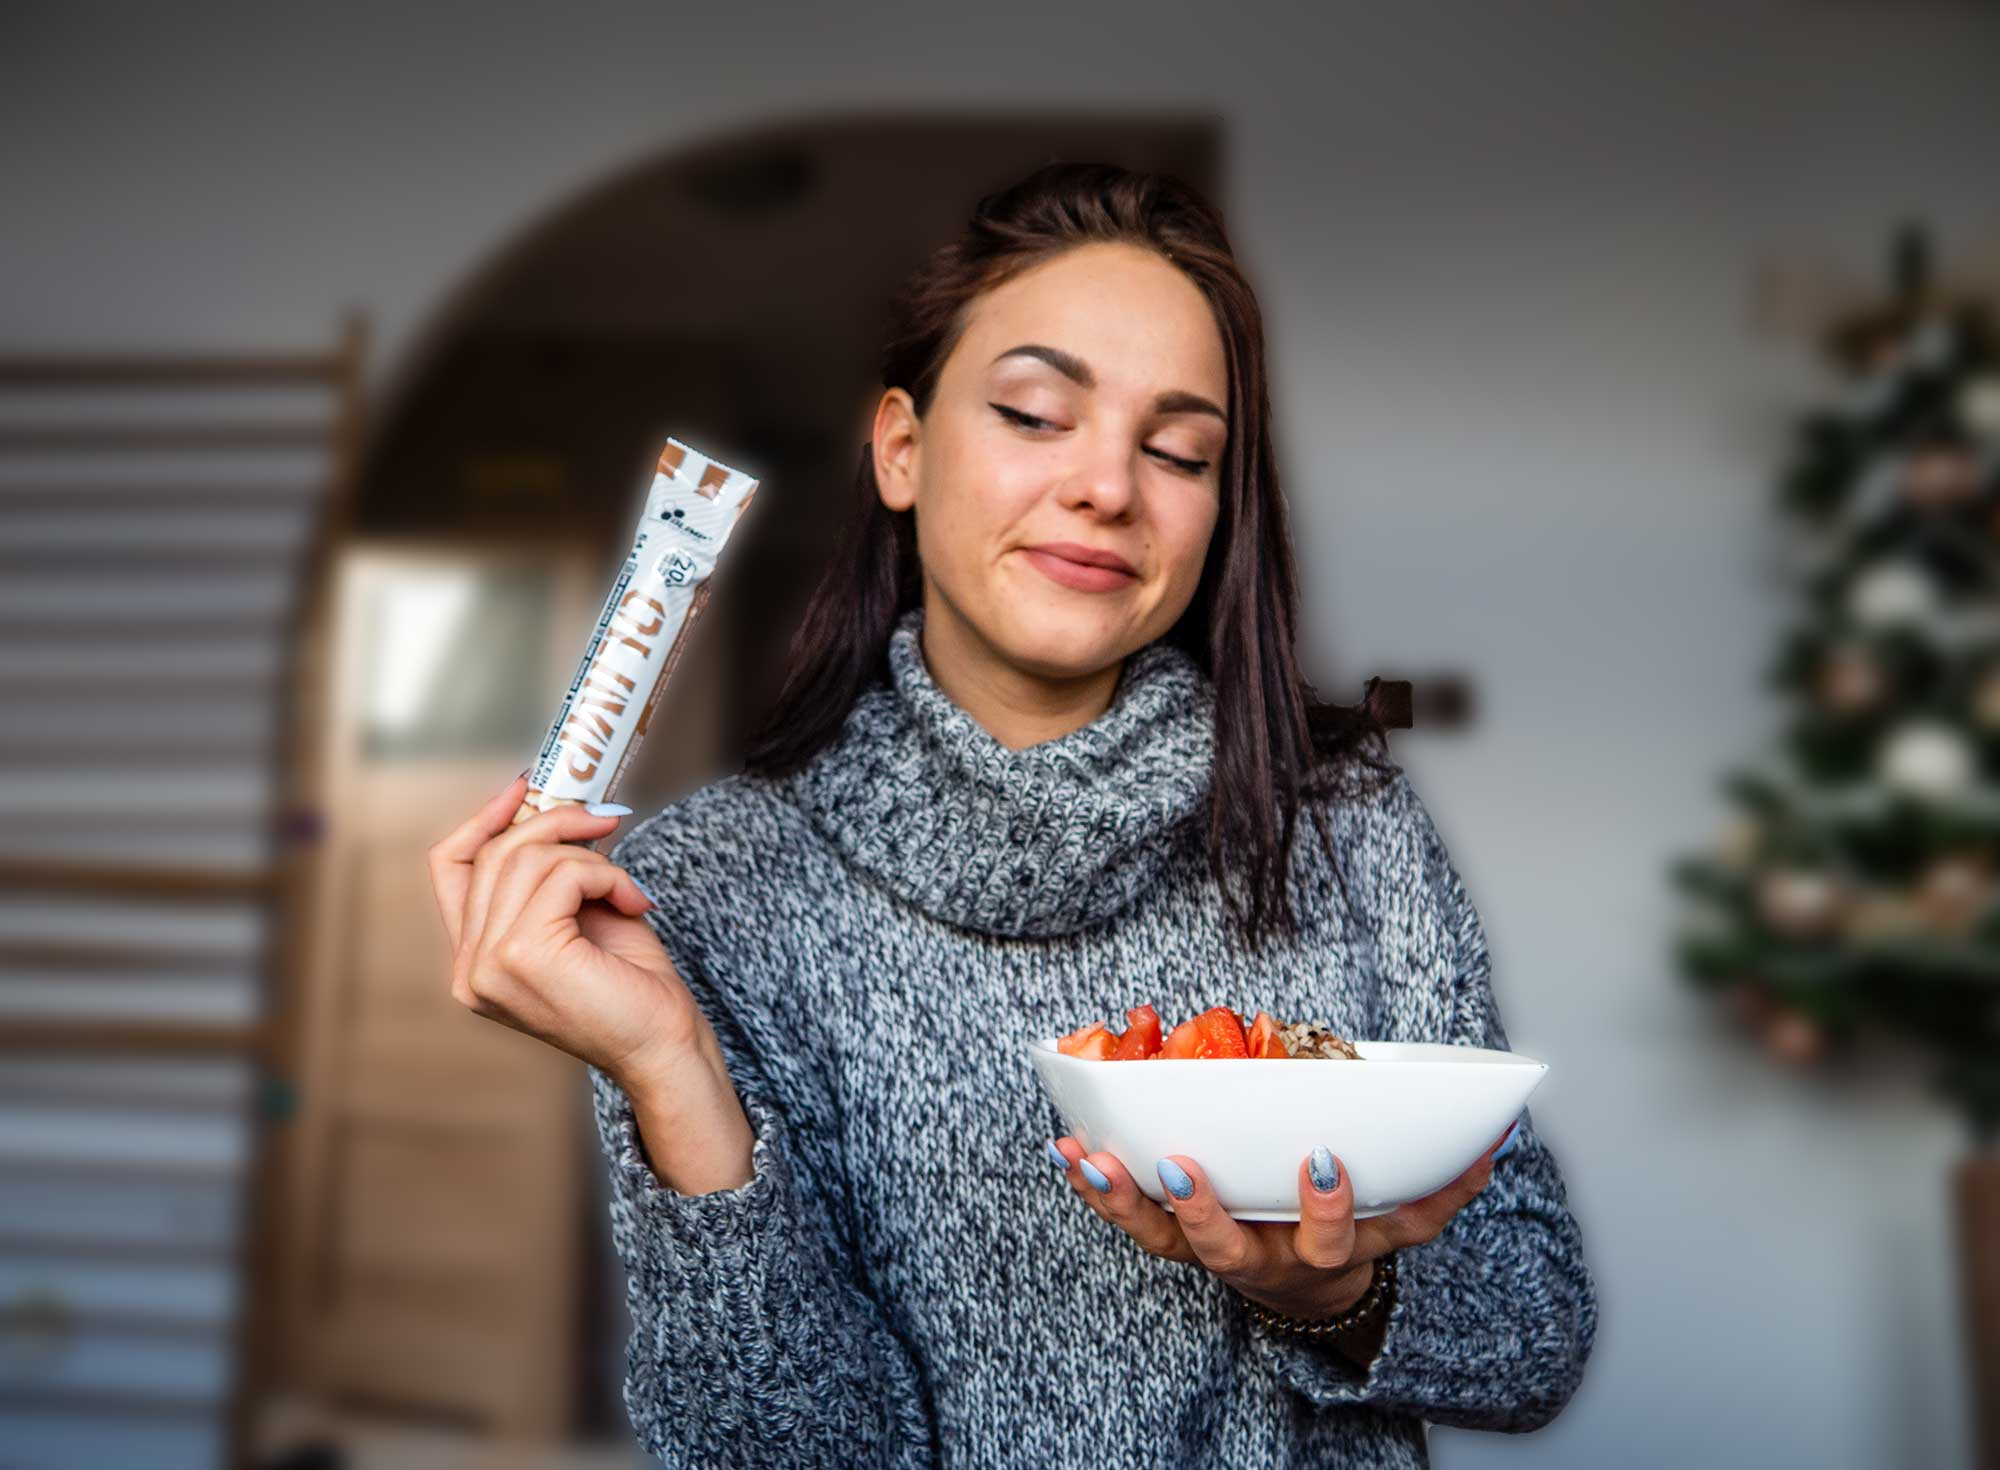 Woman considering snack vs meal